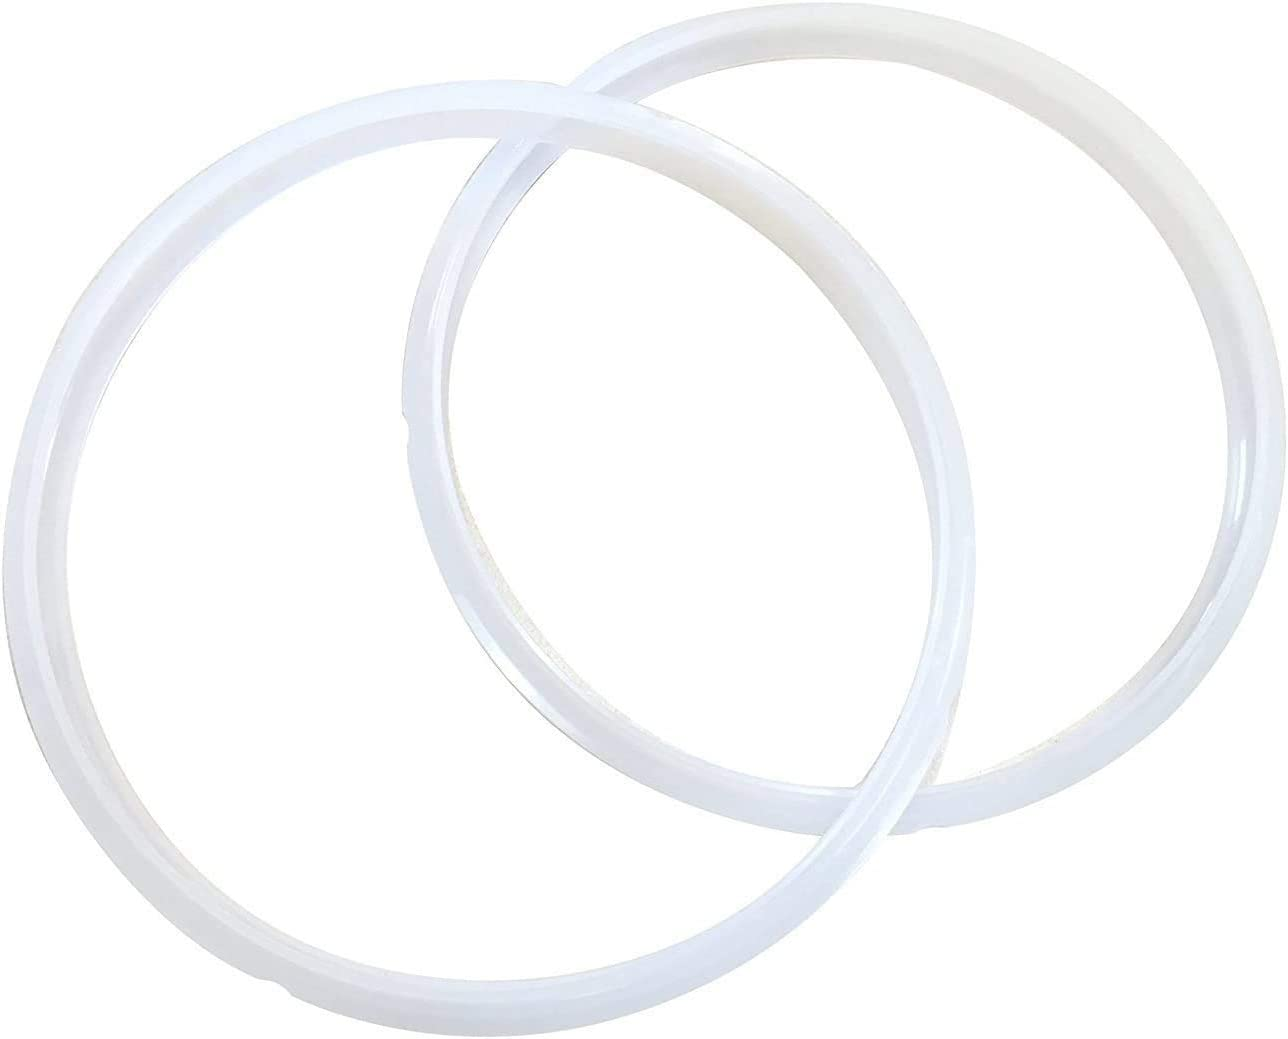 Power Pressure Cooker Sealing Ring Clear Color Multi-Cooker Rubber Gaskets for Many 5 Liter 6 Liter 5 Quart and 6 Quart Models, Set of 2